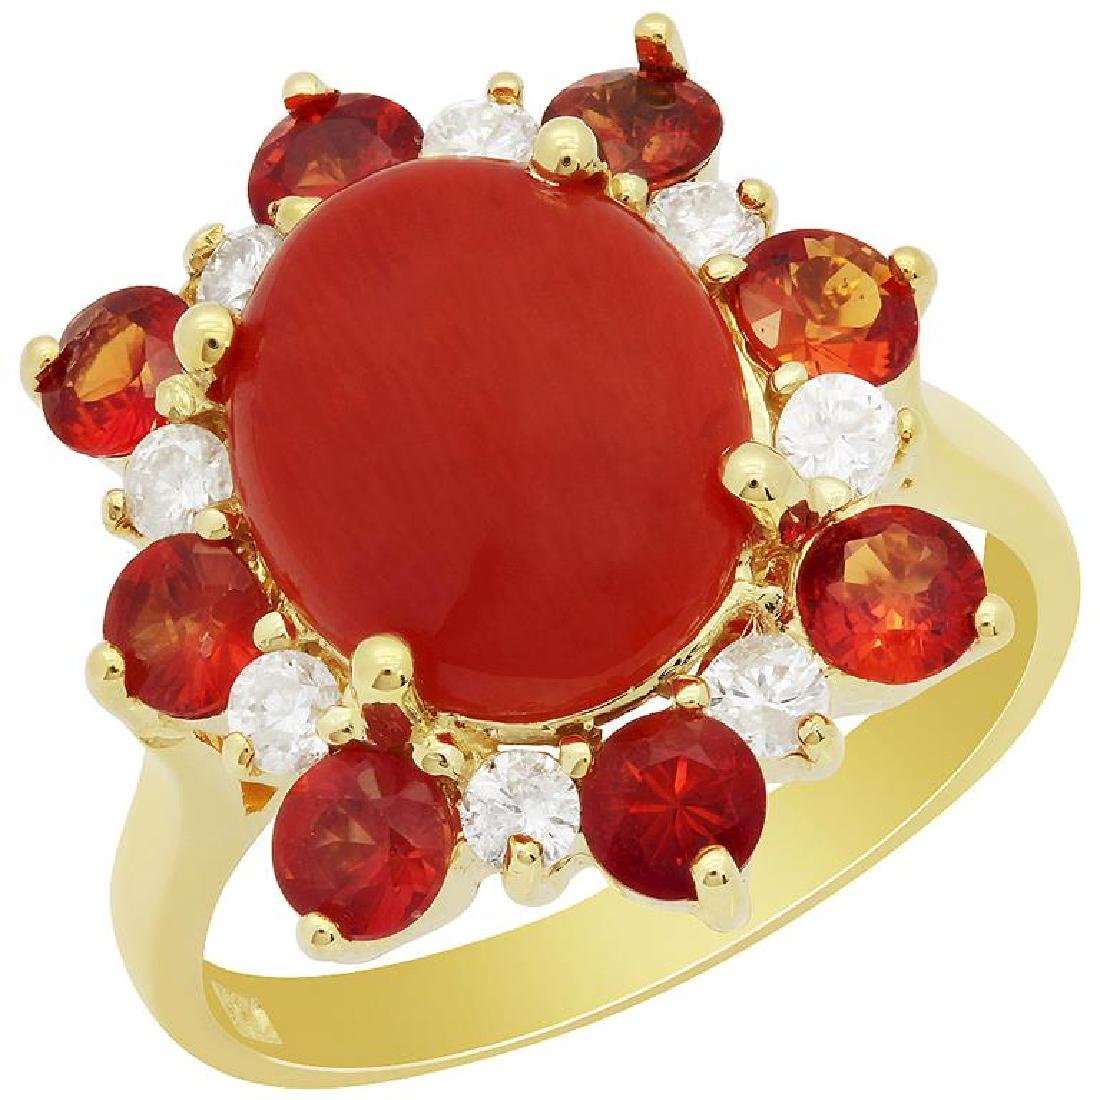 14k Yellow Gold 2.15ct Coral 1.42ct Orange Sapphire